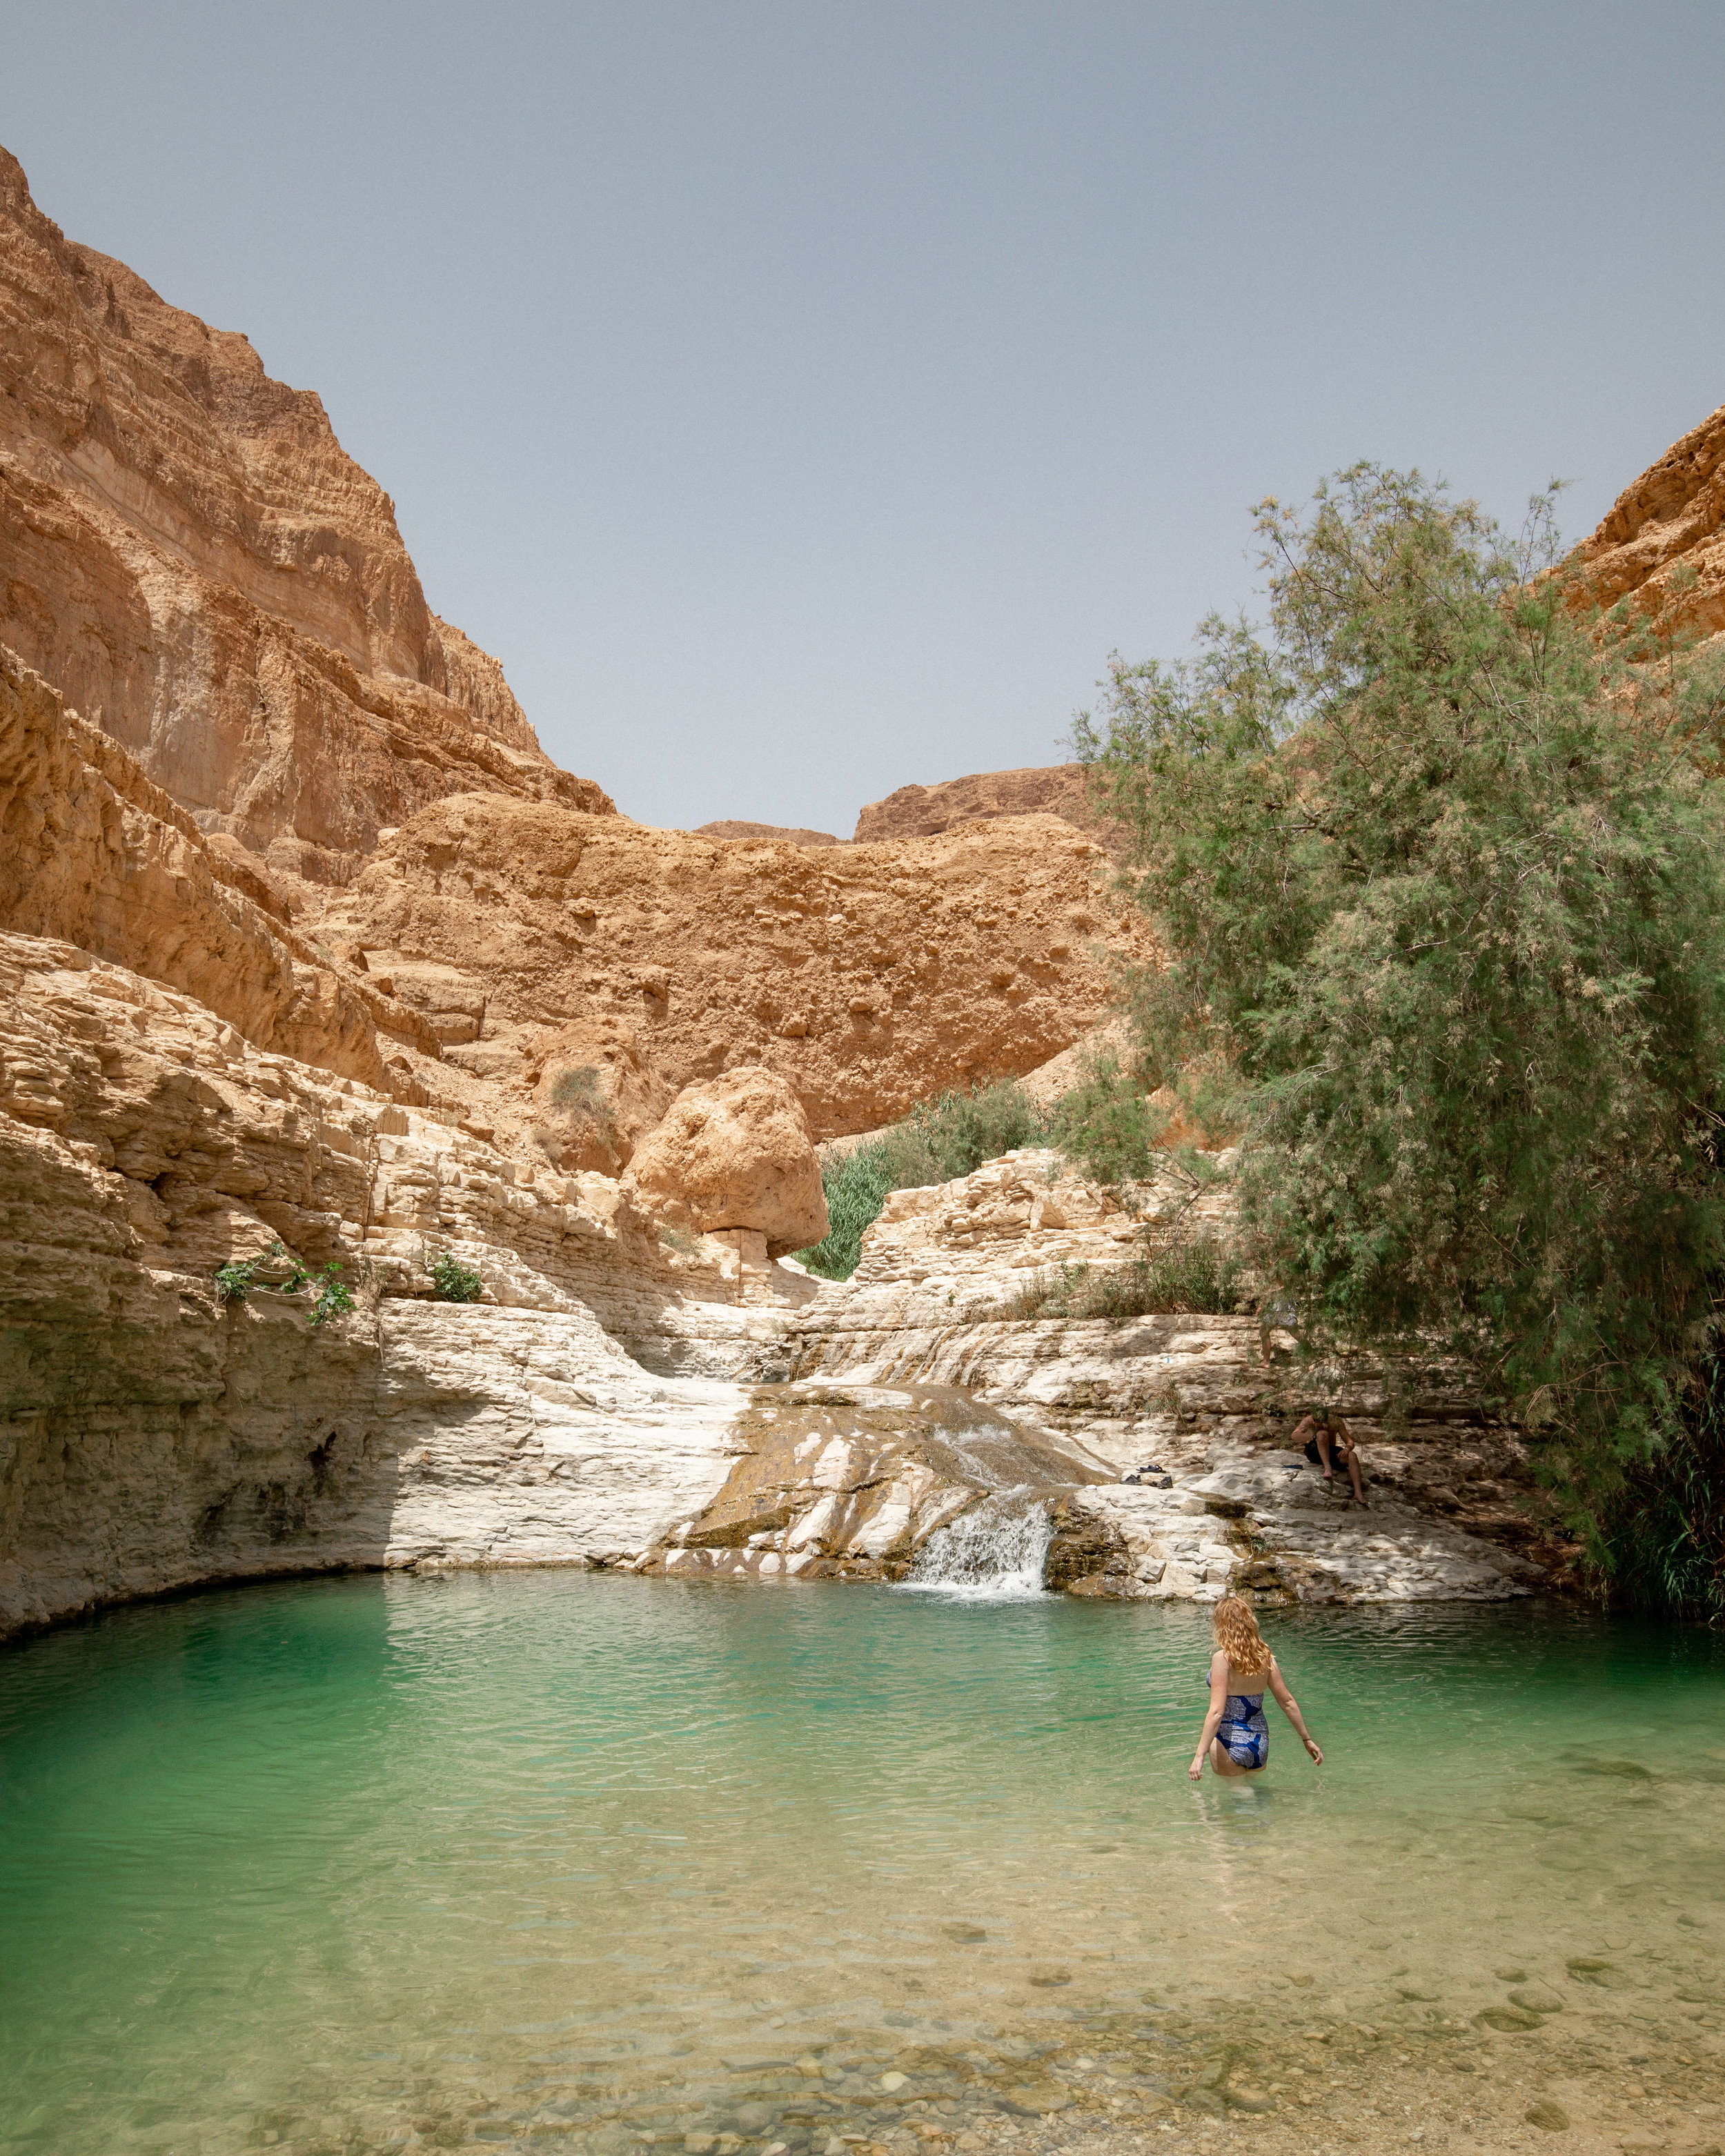 Instagrammable places in Israel: Ein Gedi